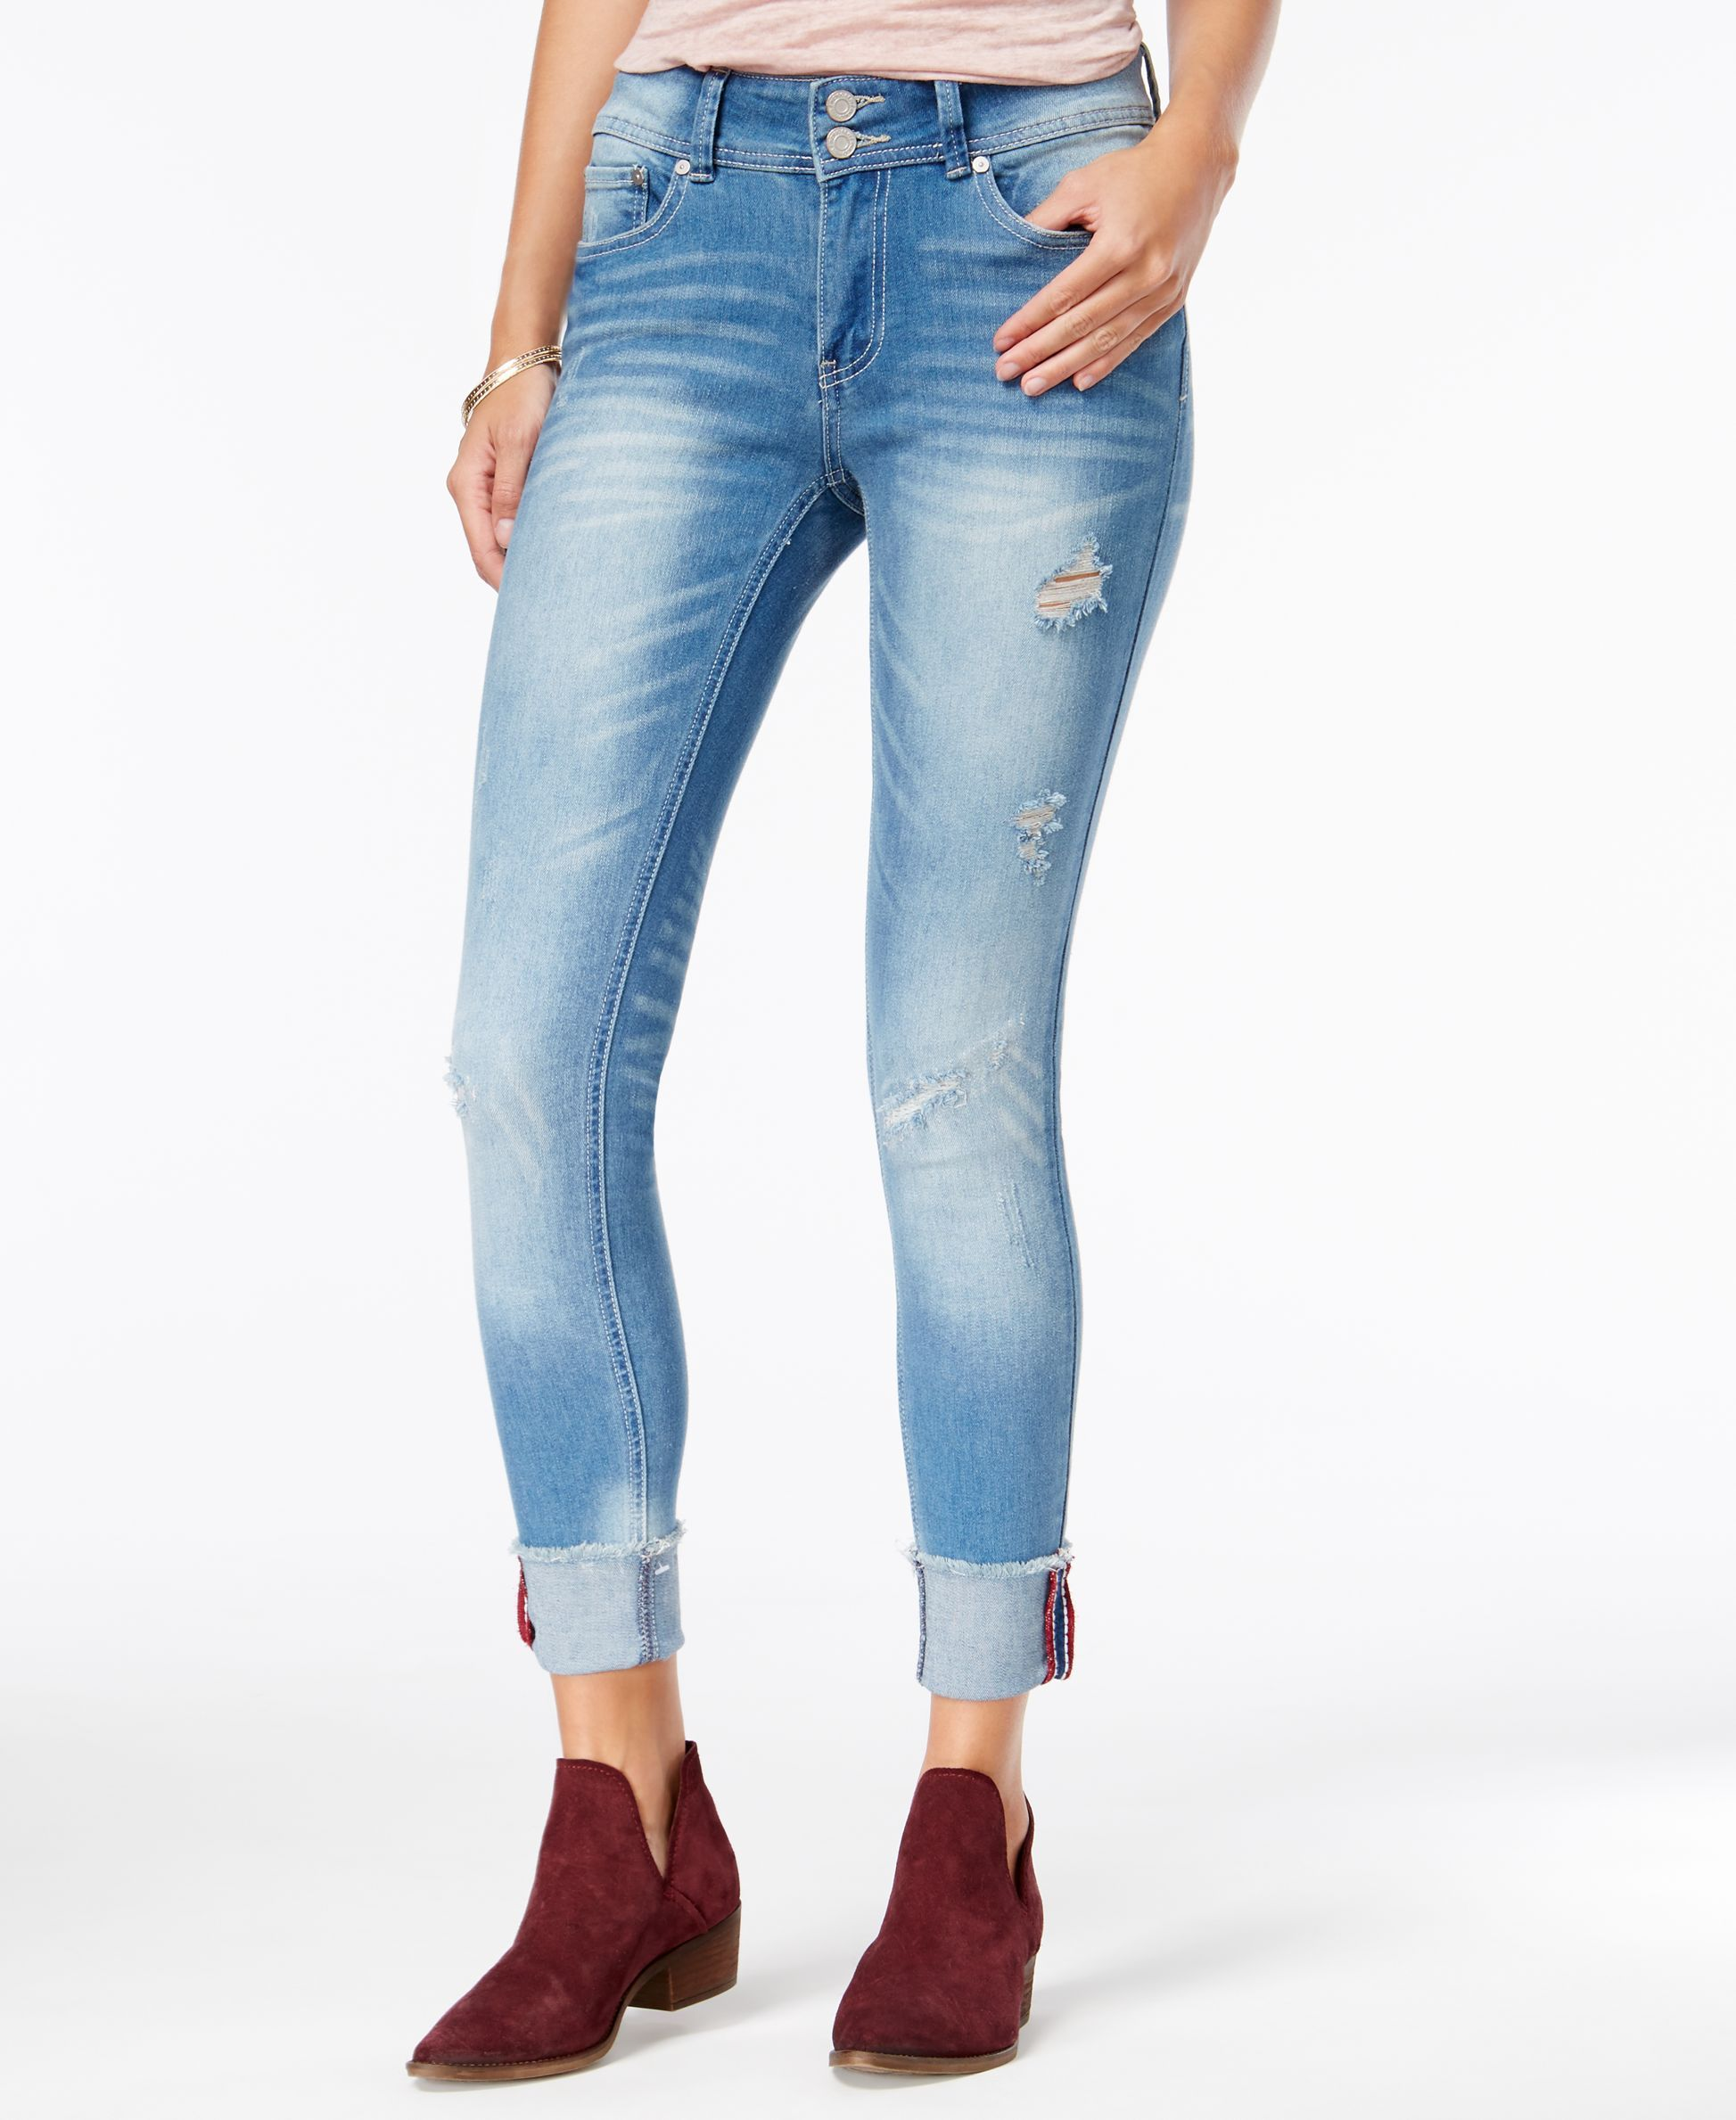 f7819b0fdde Rock a lived-in vibe in these ripped skinny jeans from Indigo Rein ...